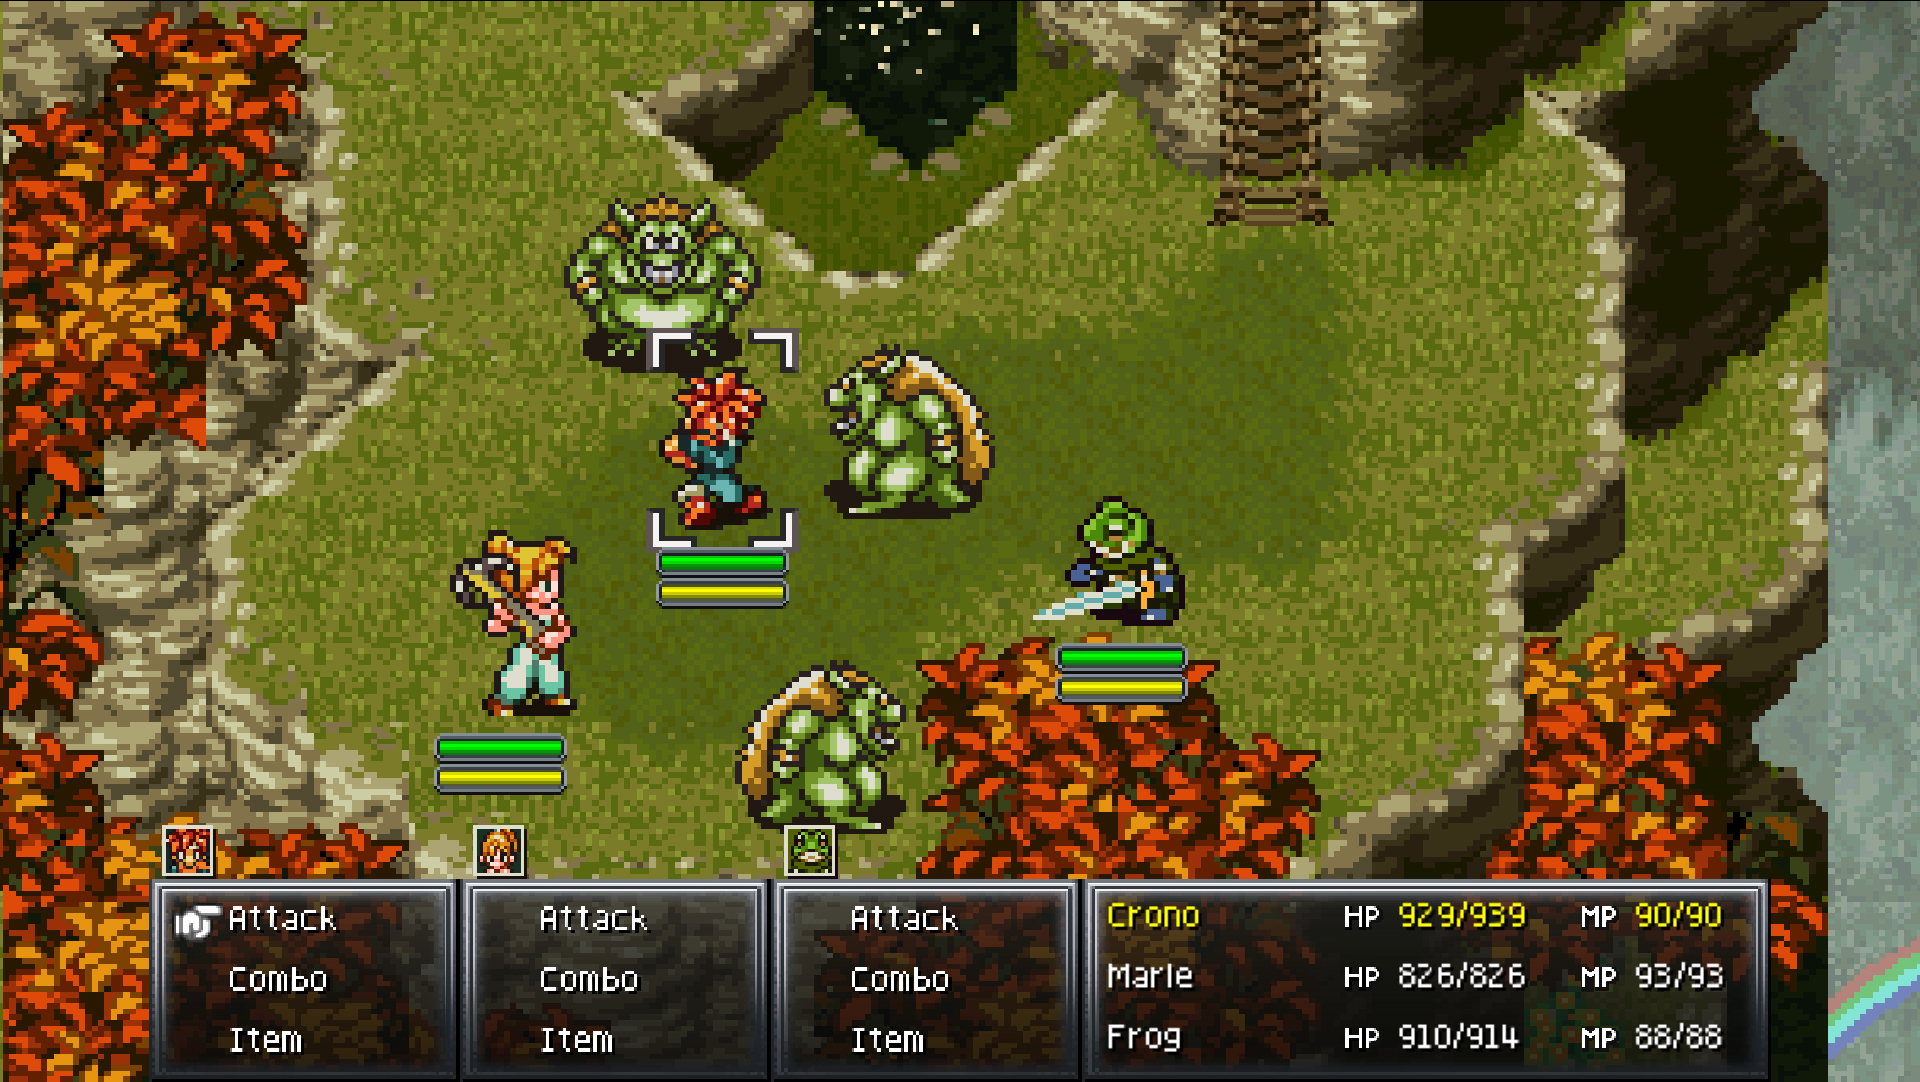 Chrono Trigger on PC has been rescued from disaster - and